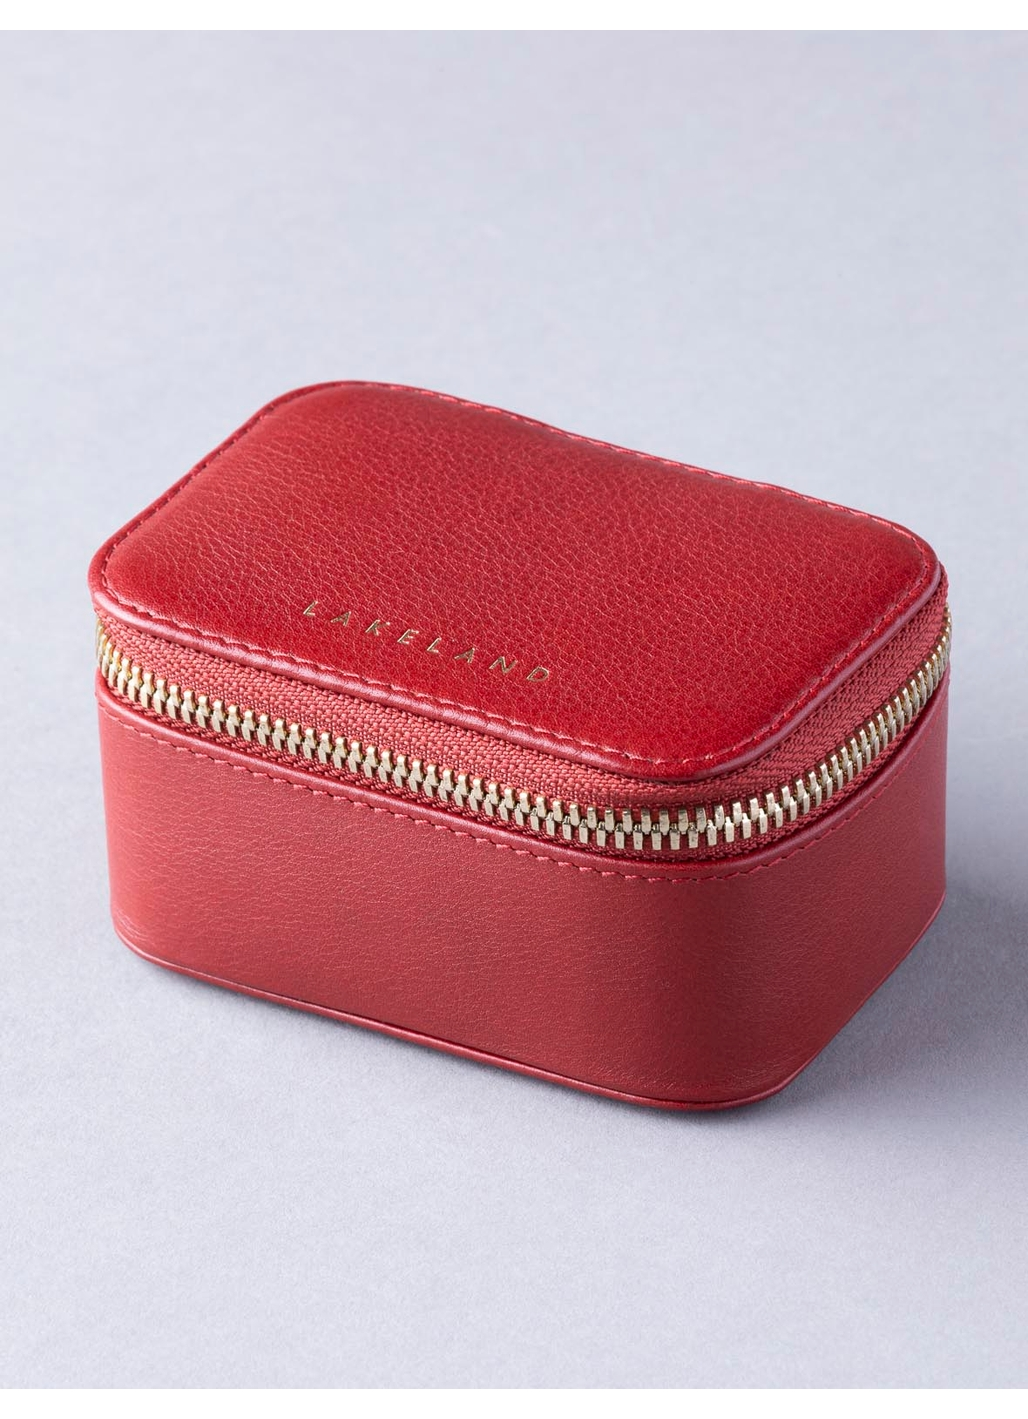 Wray Leather Handbag Tidy in Red